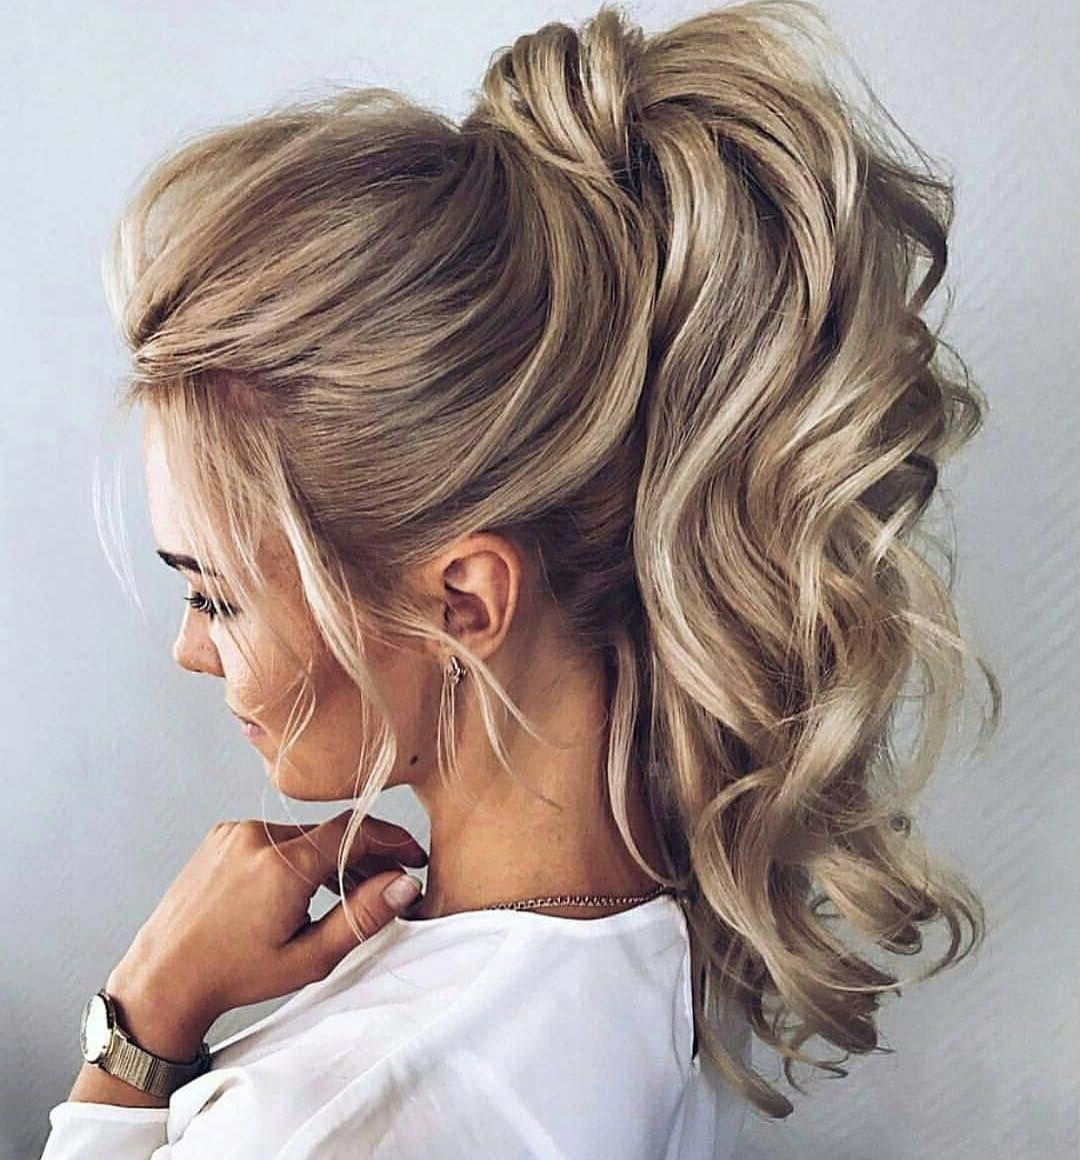 Easy Wedding Guest Hairstyle For Long Hair Weddingguesthair Easy Wedding Guest Hairstyles Guest Hair Wedding Guest Hairstyles